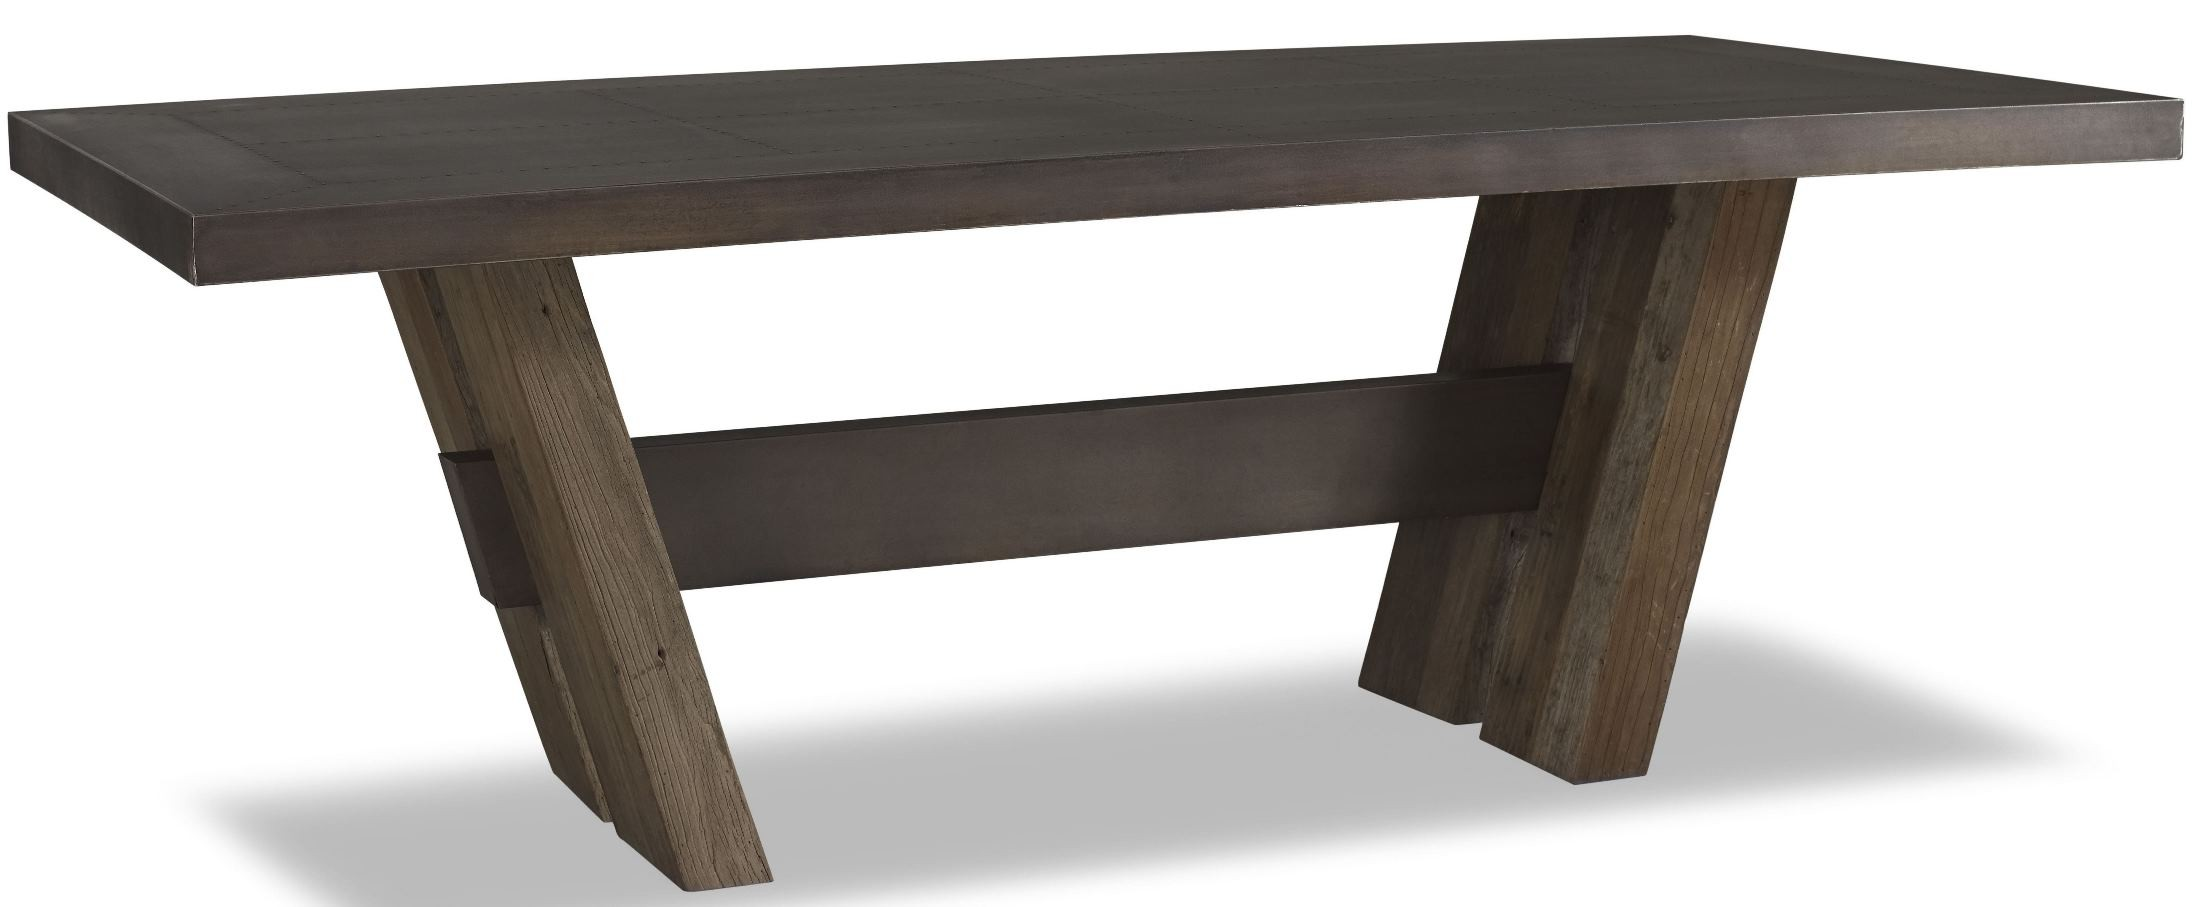 Winston Zinc Top Rectangular Dining Table WN 302 Brownstone : wn302hires from colemanfurniture.com size 2200 x 907 jpeg 139kB